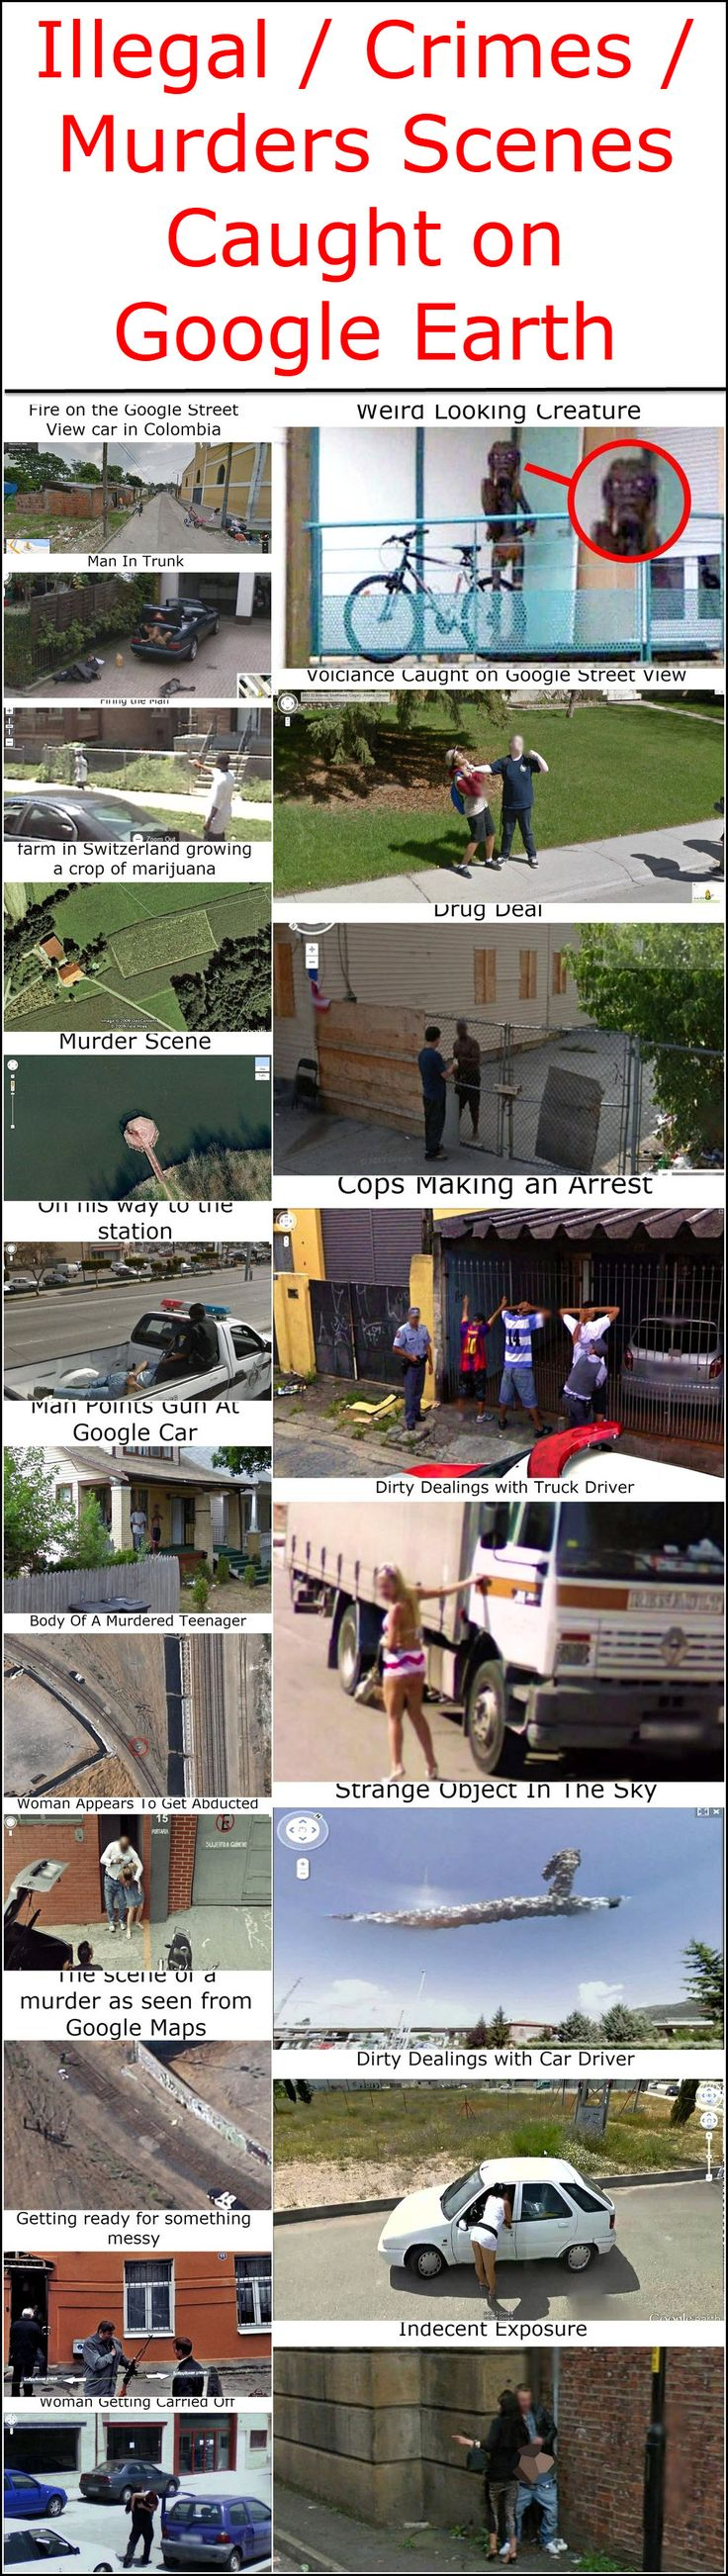 Illegal / Crimes / Murders Scenes Caught on Google Earth